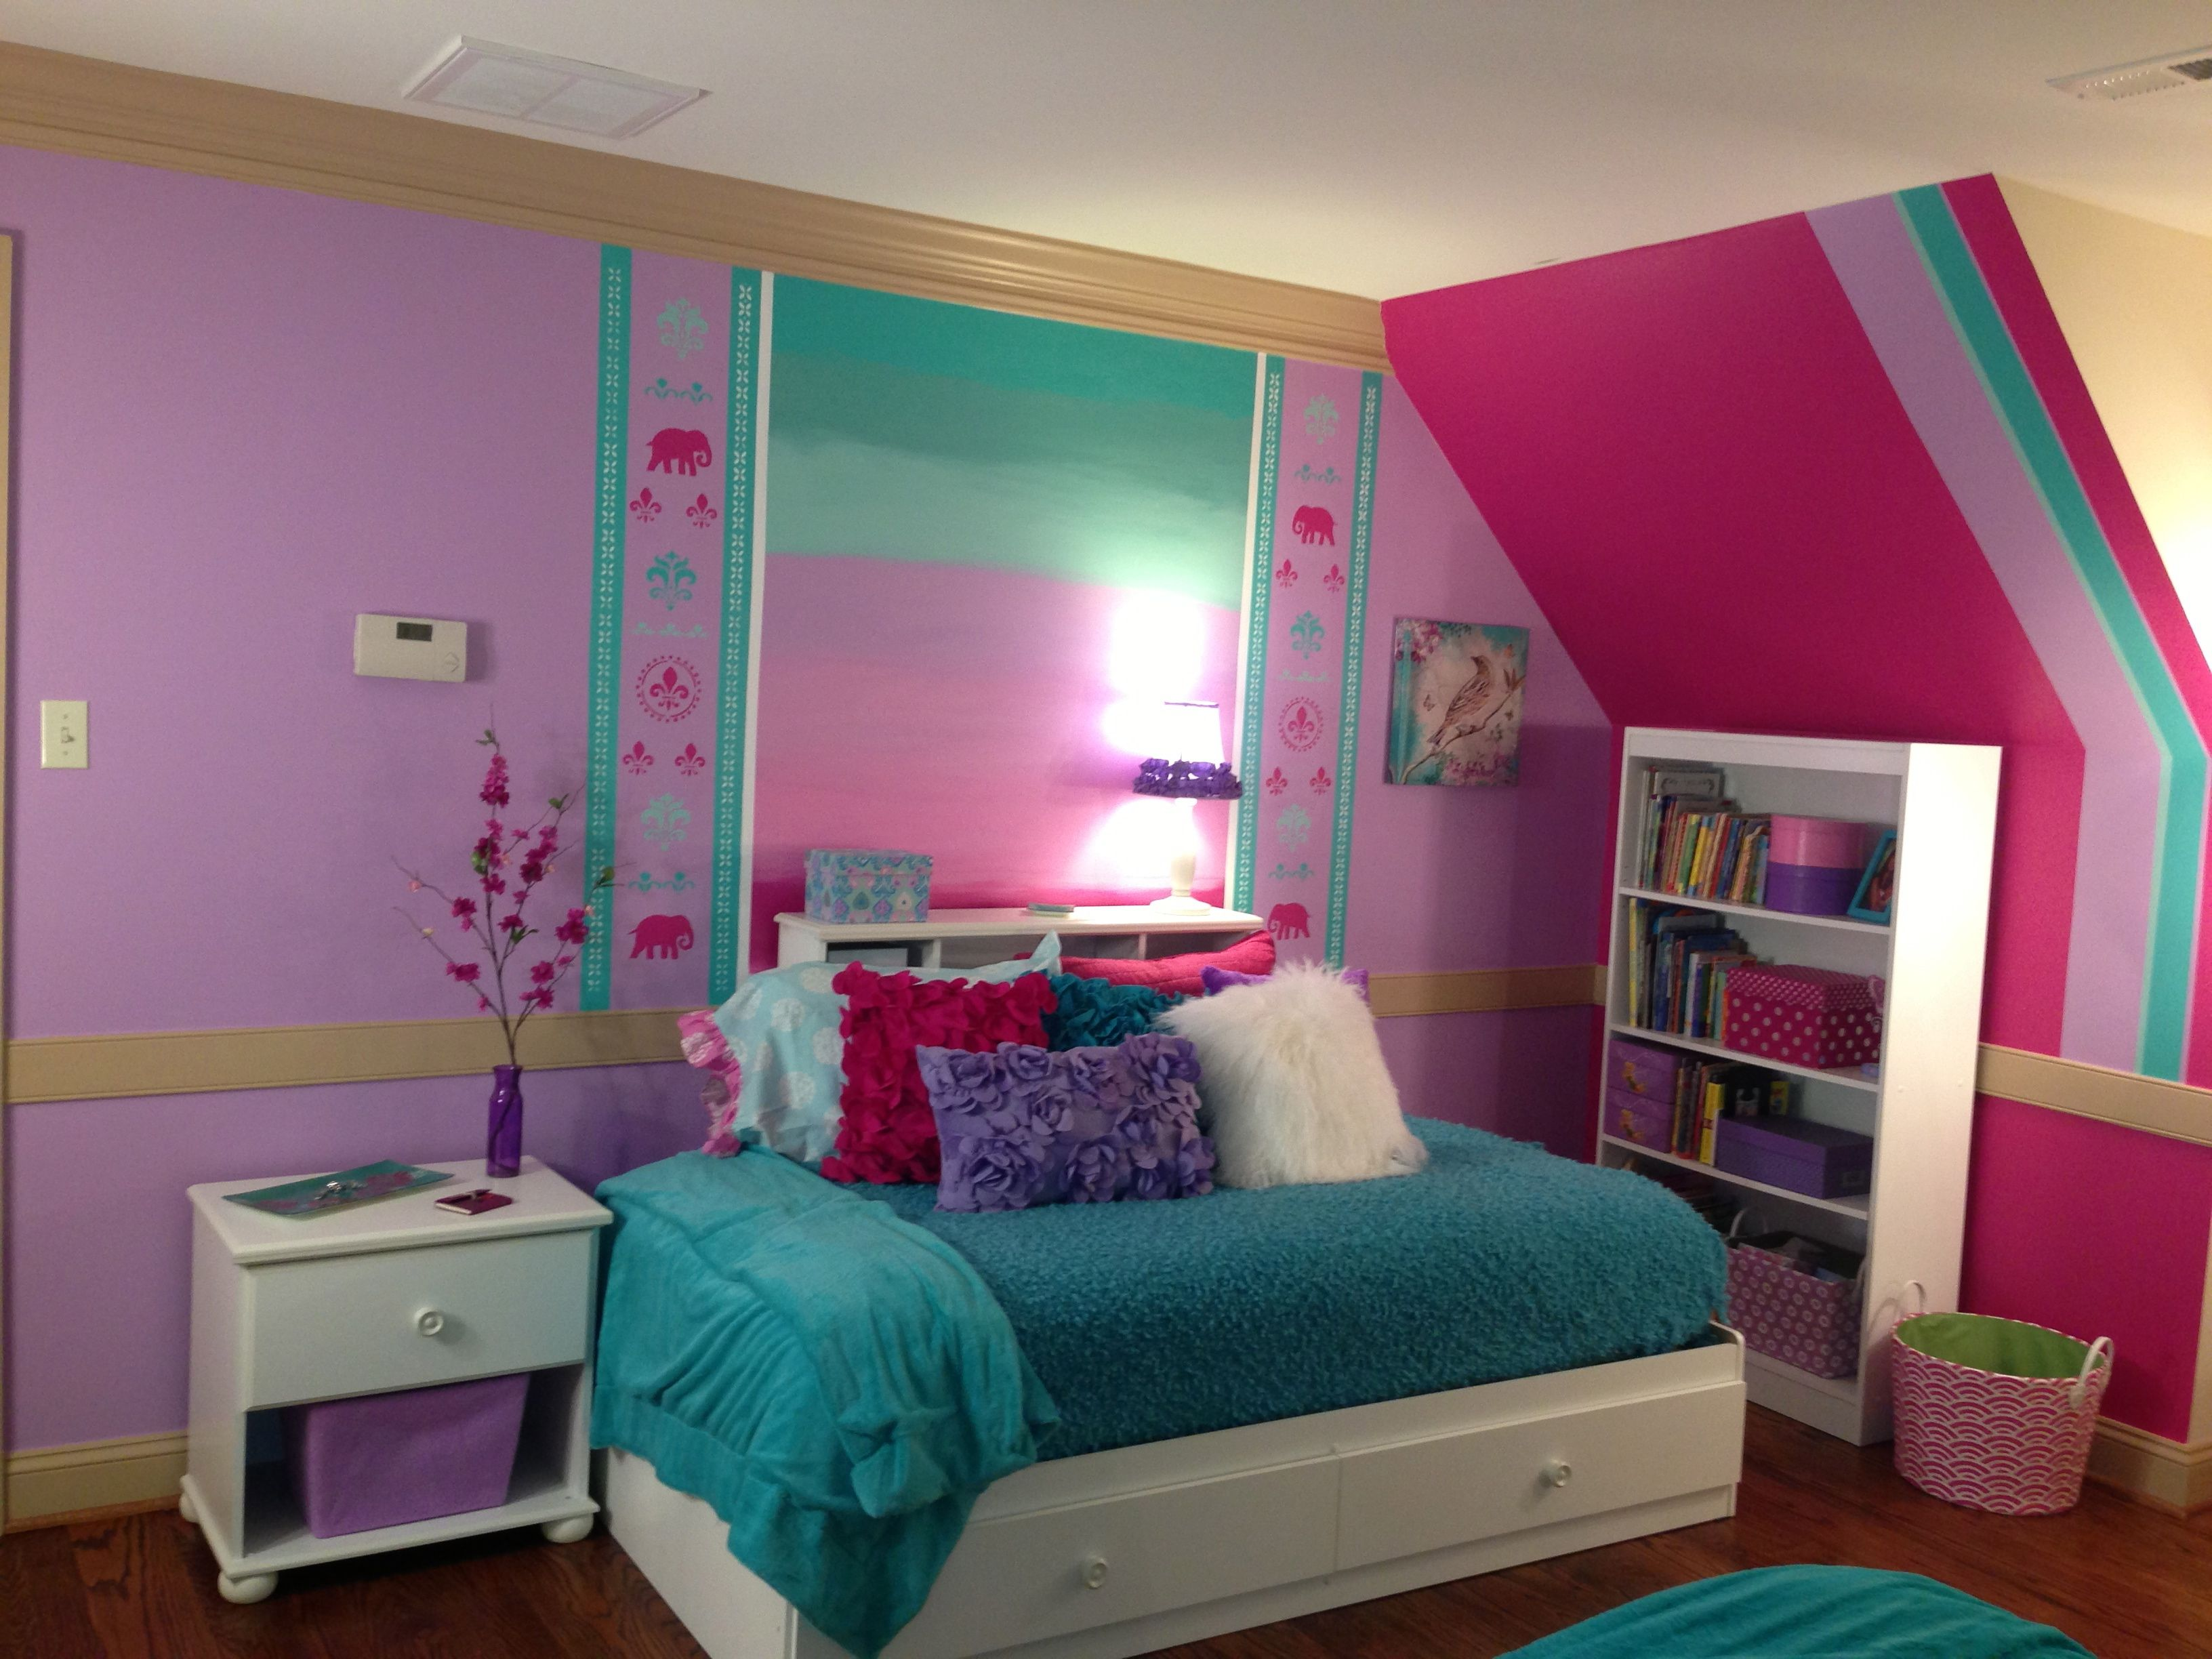 Making the most of space with a twin bed 7 year old for 8 year old bedroom ideas